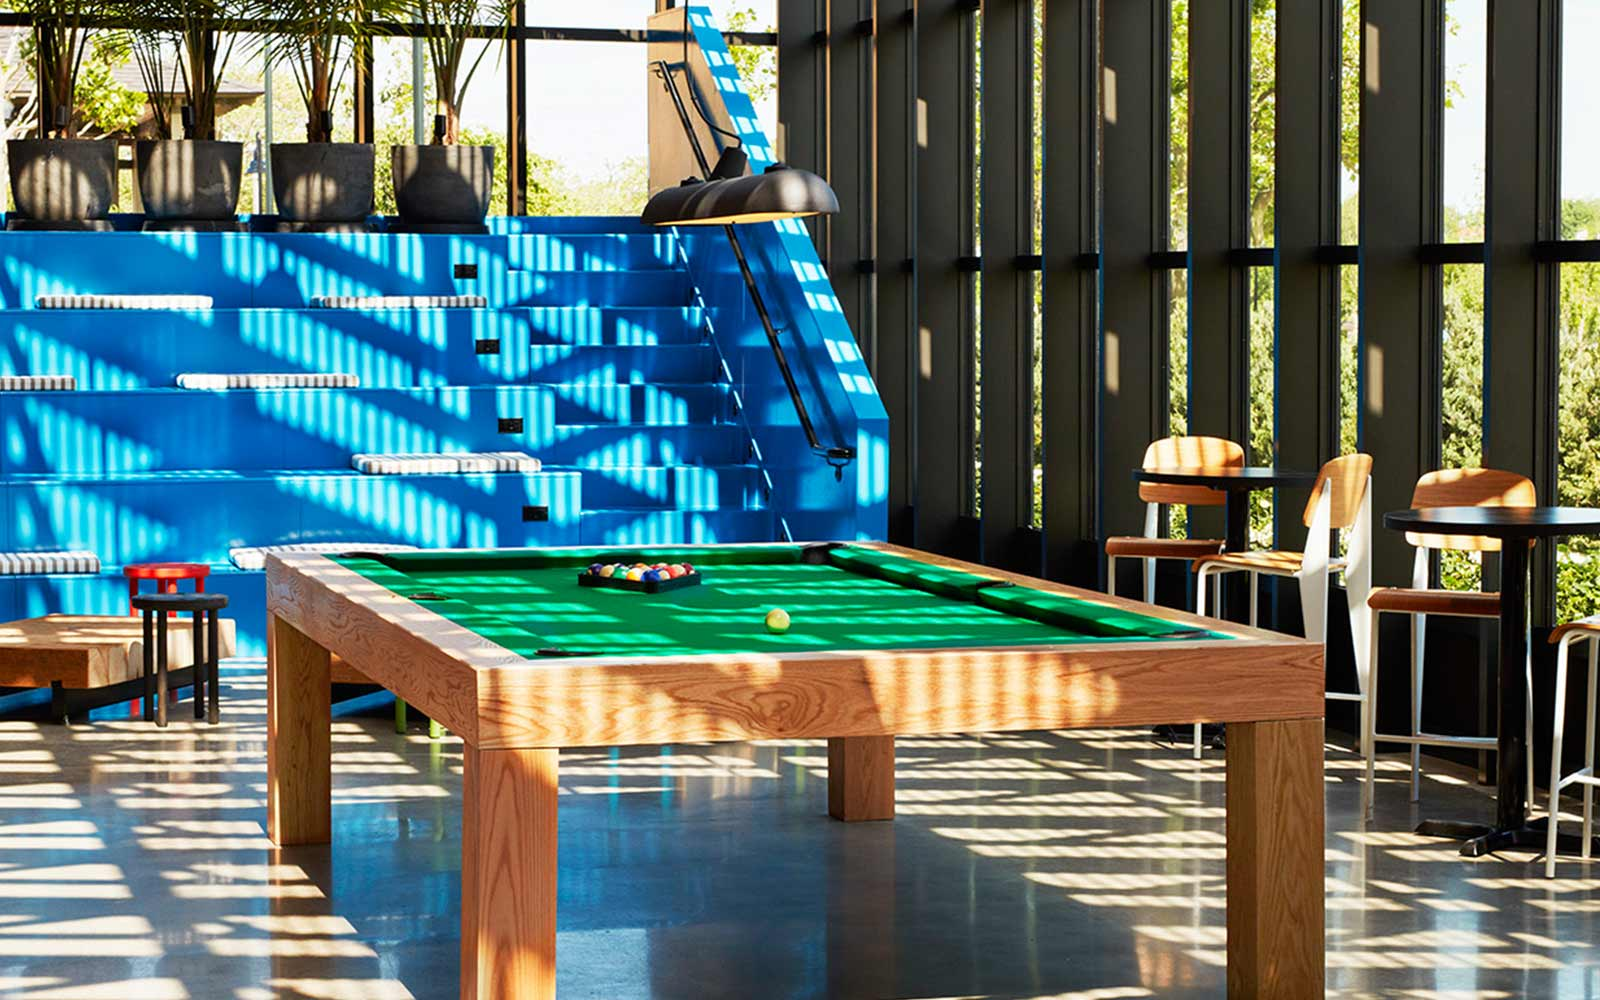 Pool table with blue bleacher seating in the background